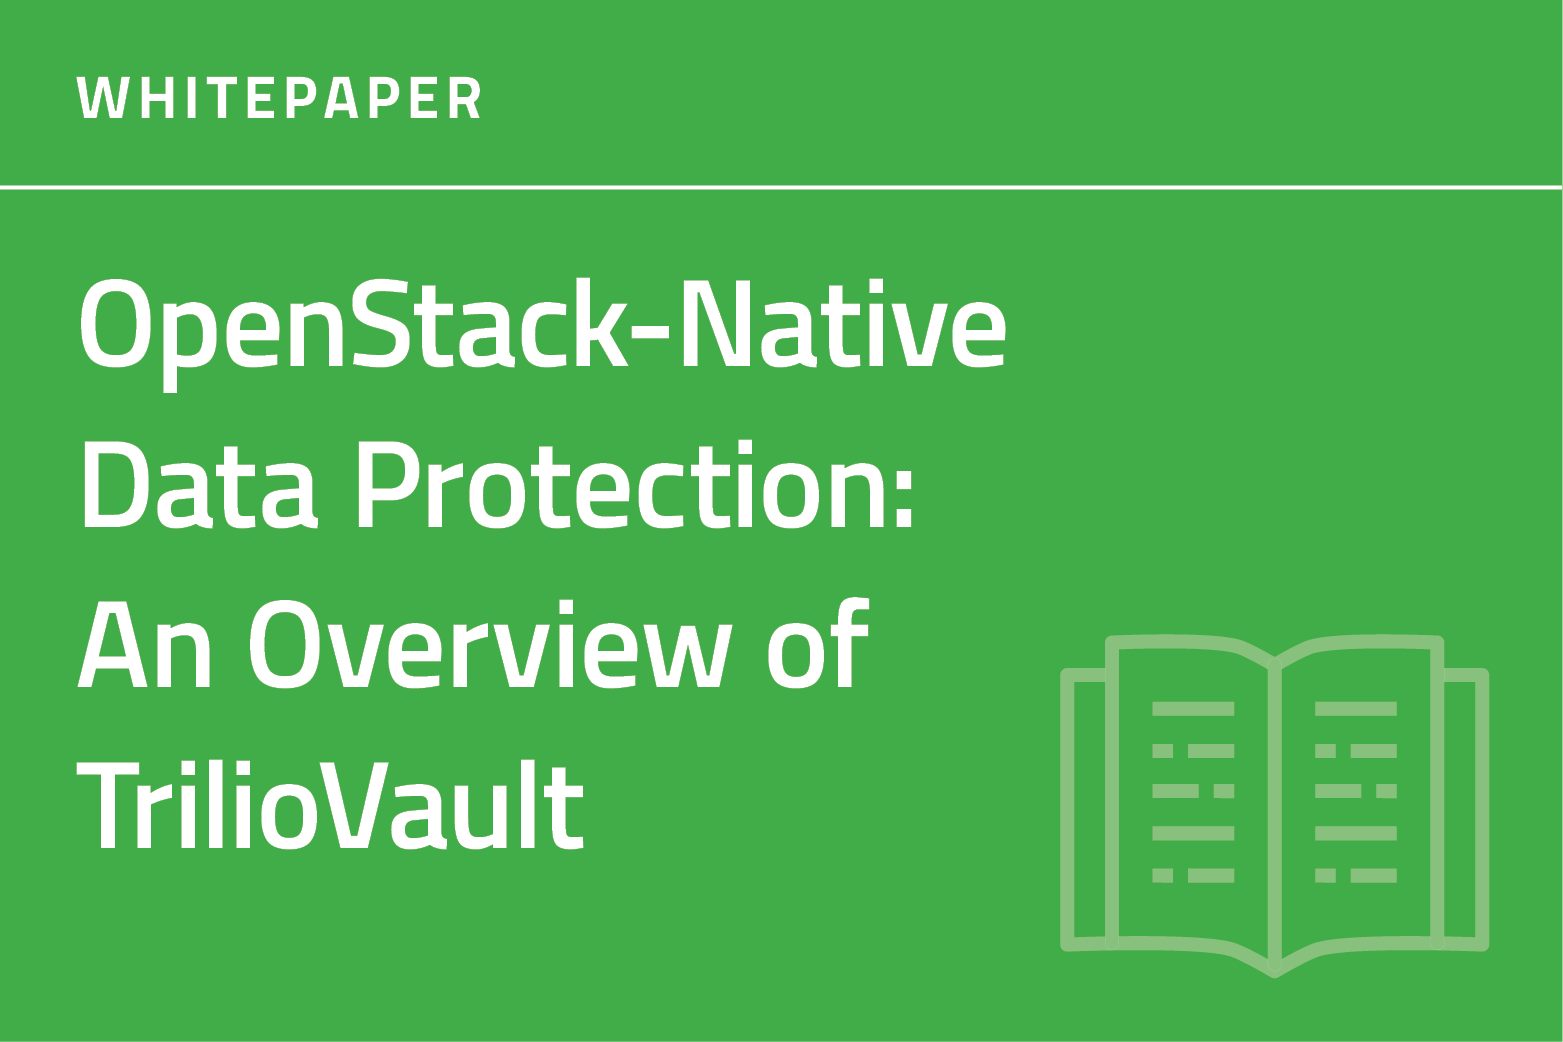 OpenStack-Native Data Protection with TrilioVault (Solution Overview)